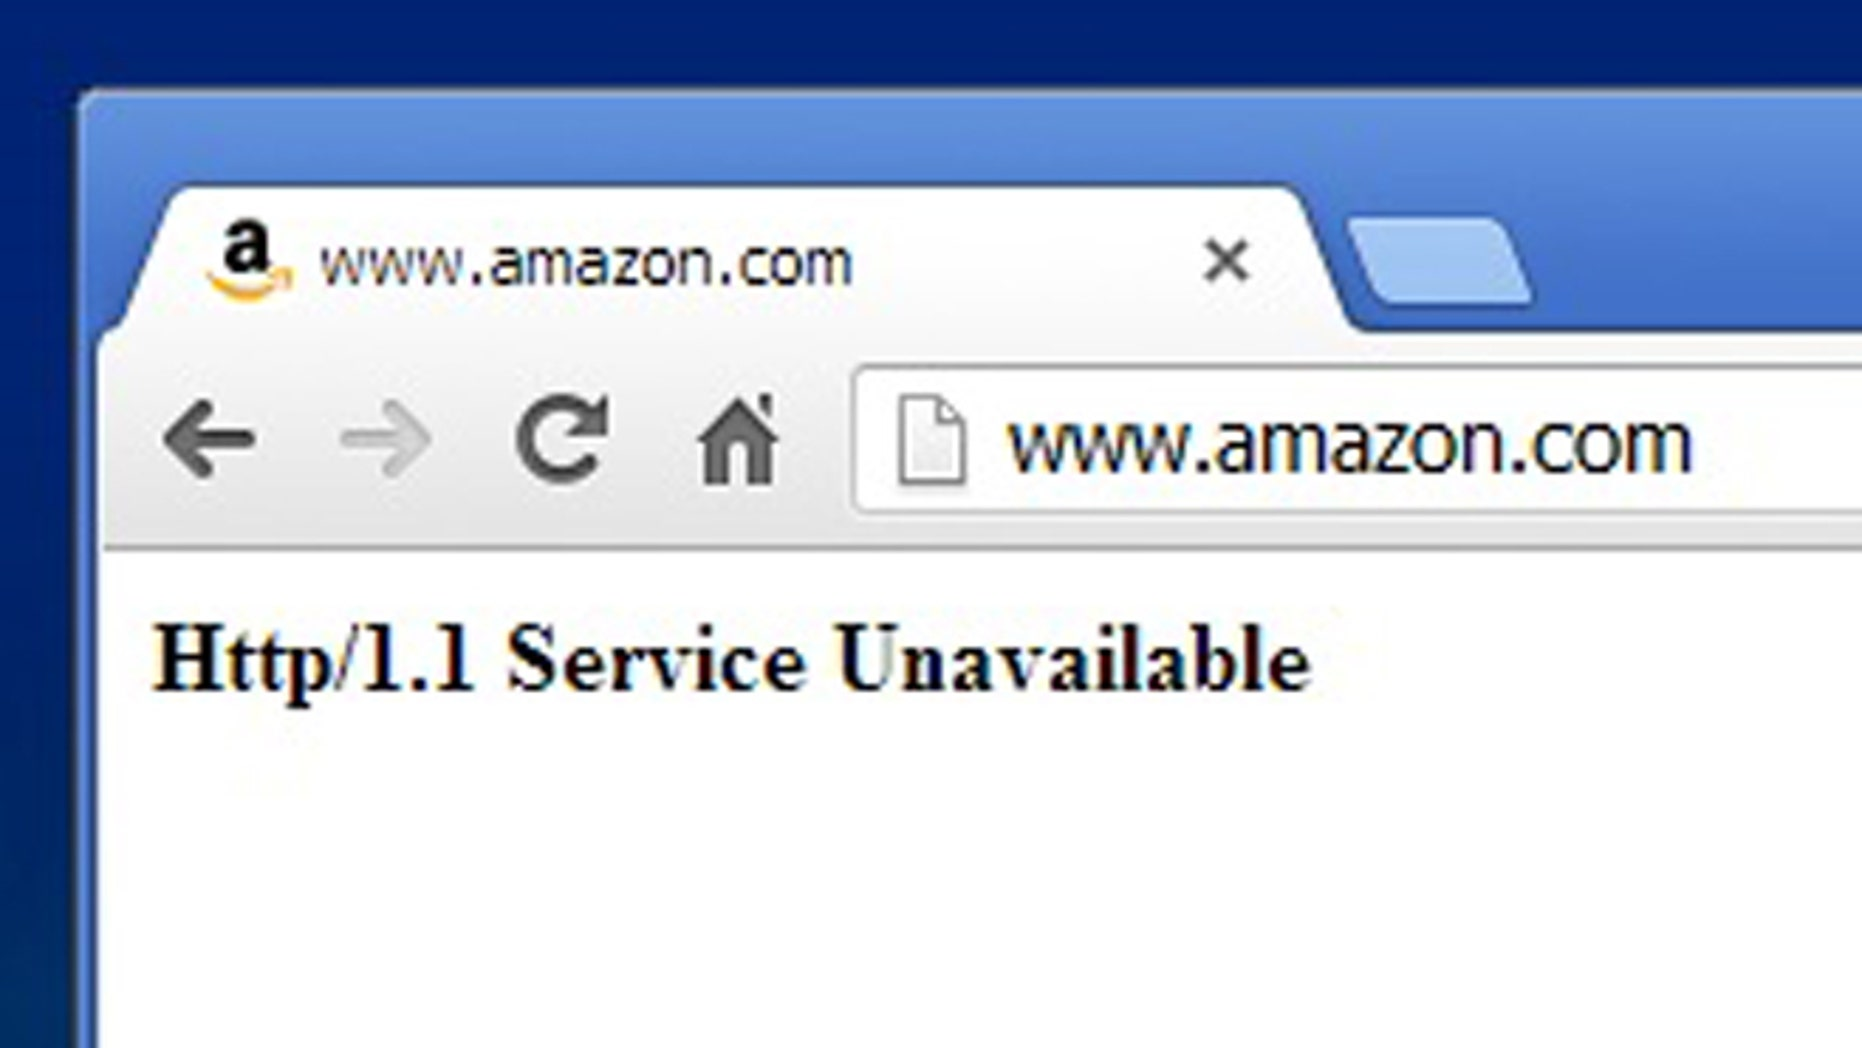 Jan. 31, 2013: Amazon.com's website is offline, a rarity for the Internet shopping giant.